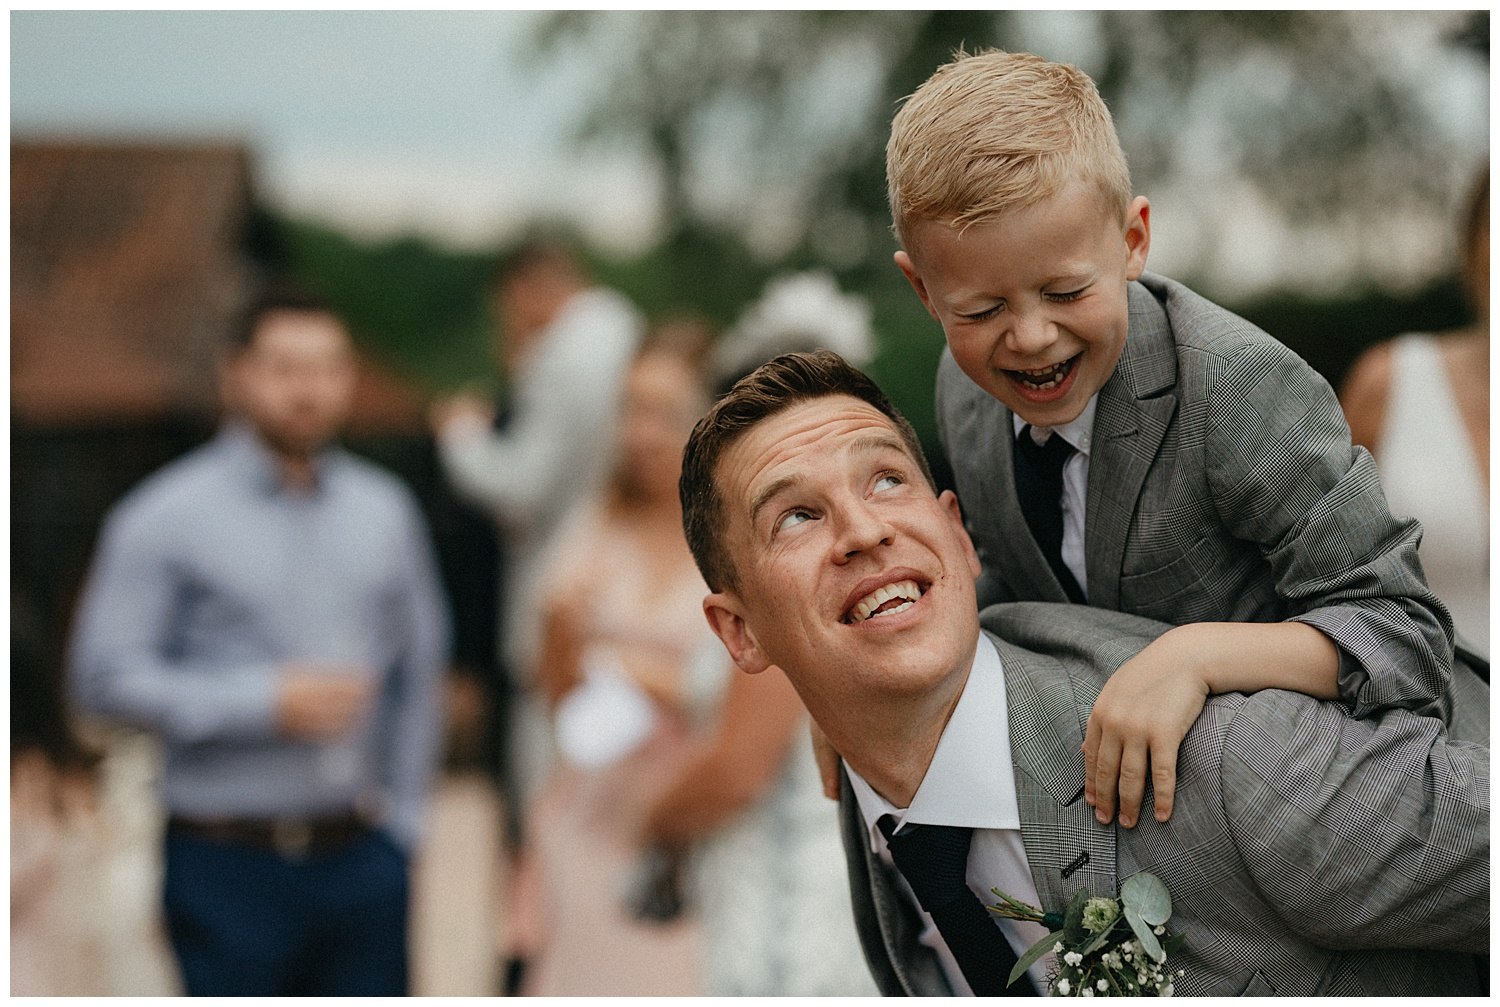 Weddings-at-Crondon-Park-the-groom-and-son-laugh